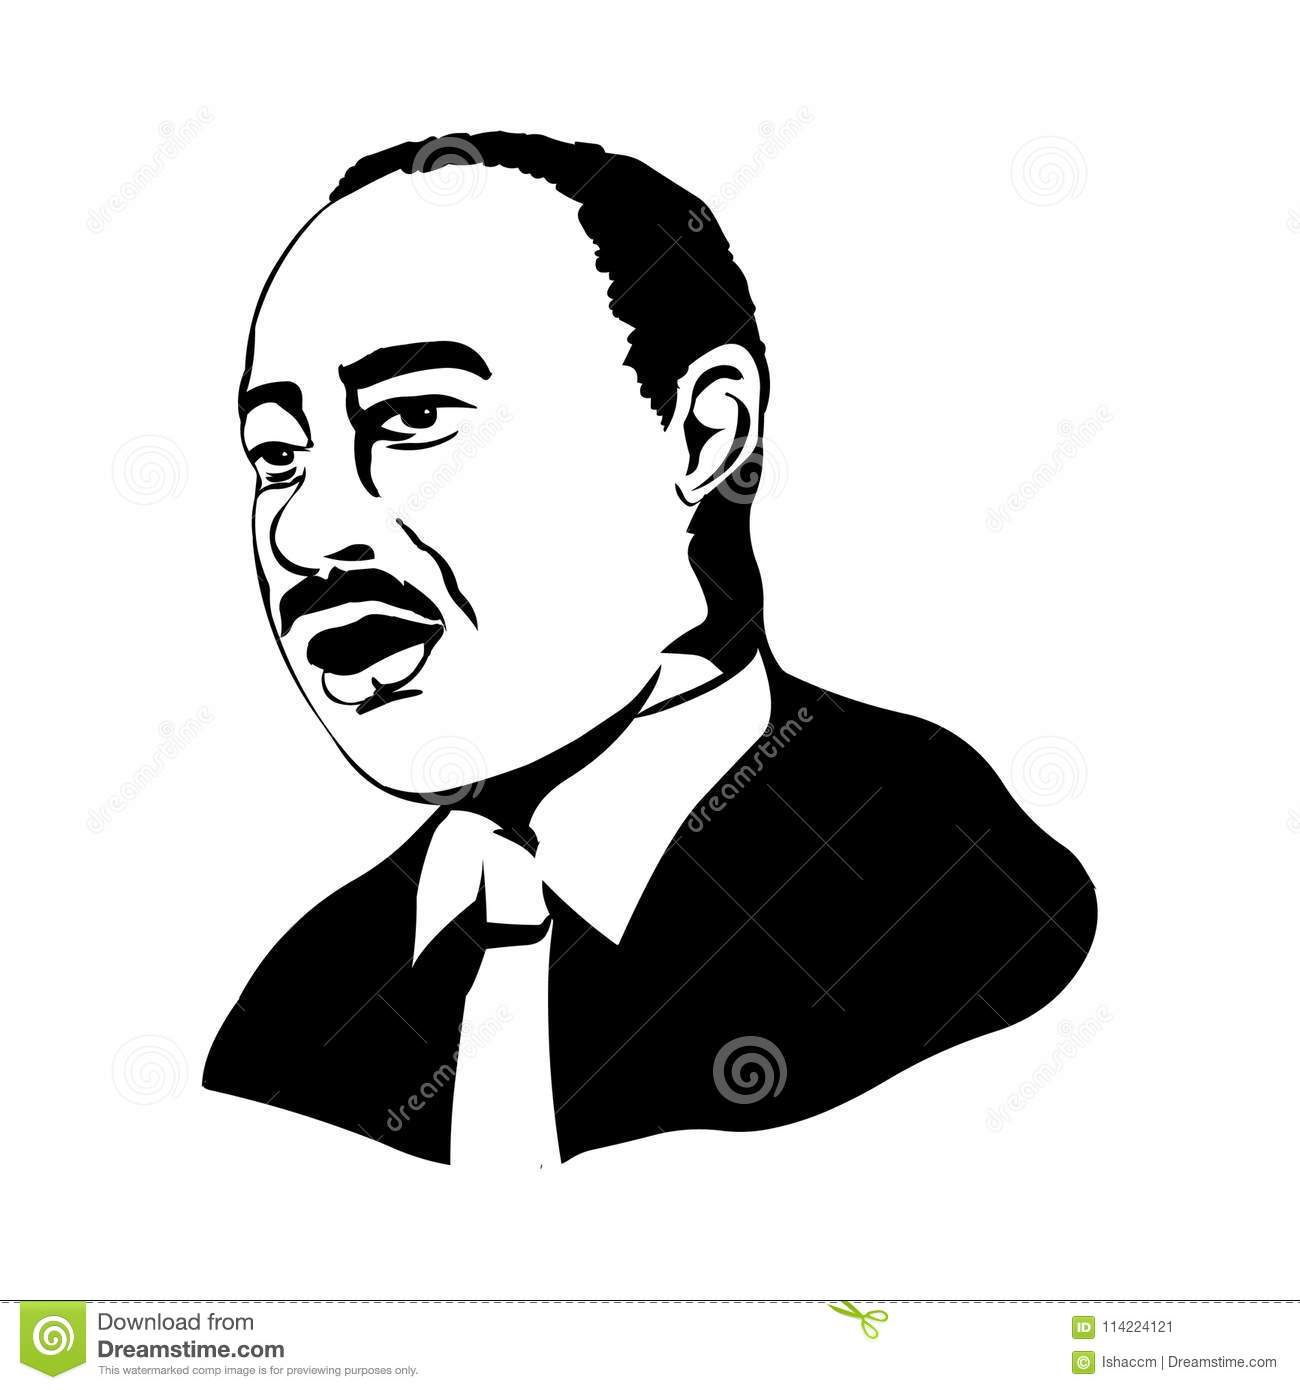 Van Martin Luther King Vectorportret van Martin Luther King Jr